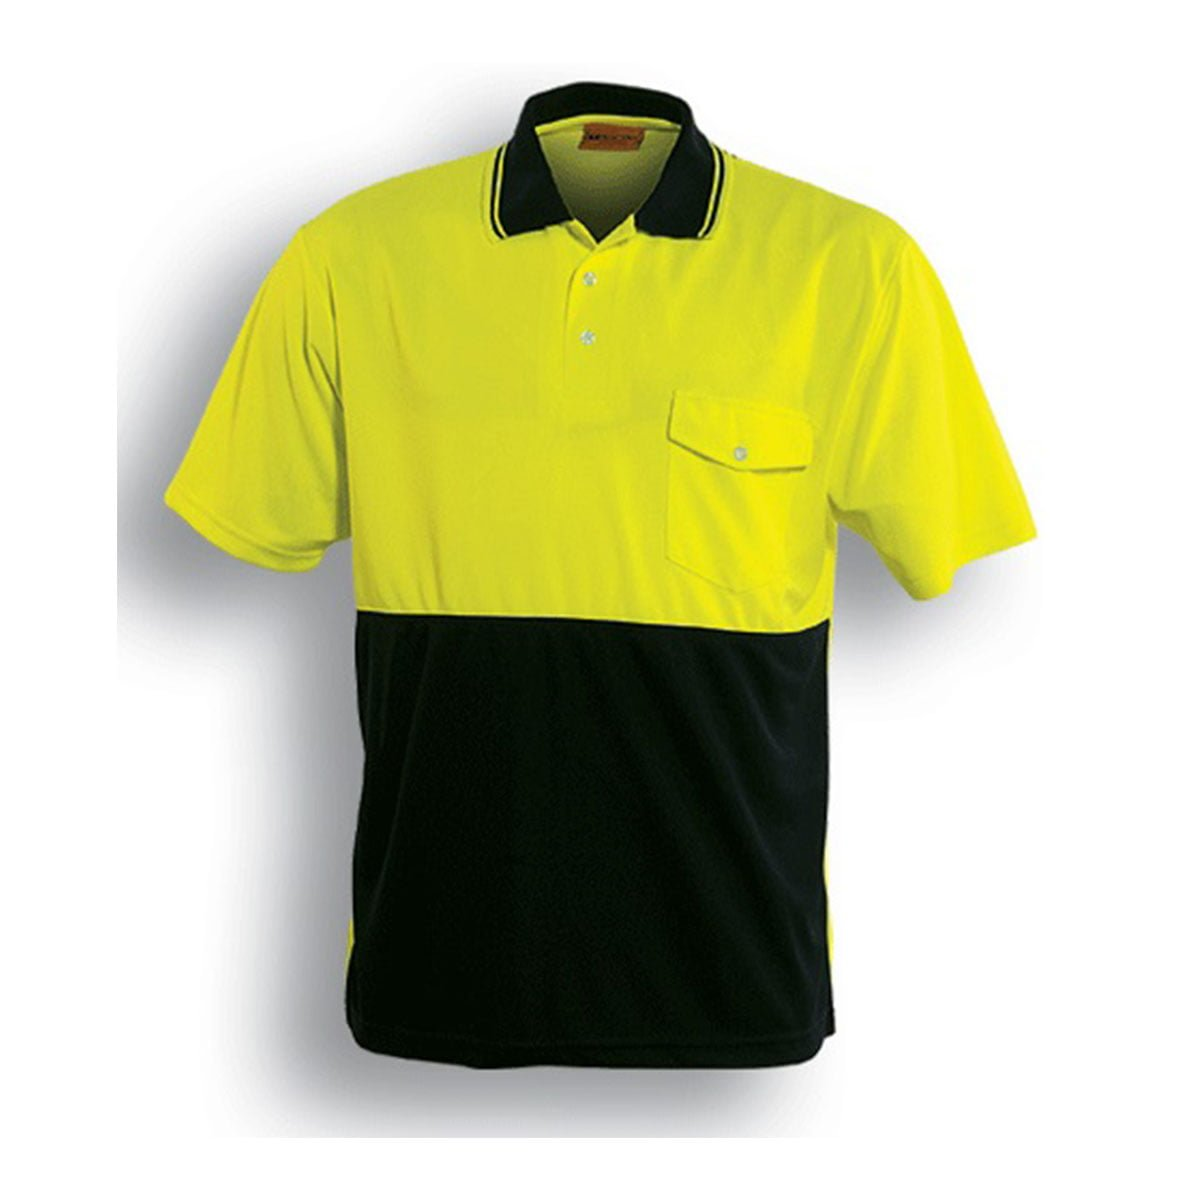 HI-VIS SAFETY POLO – SHORT SLEEVE-Lime / Black